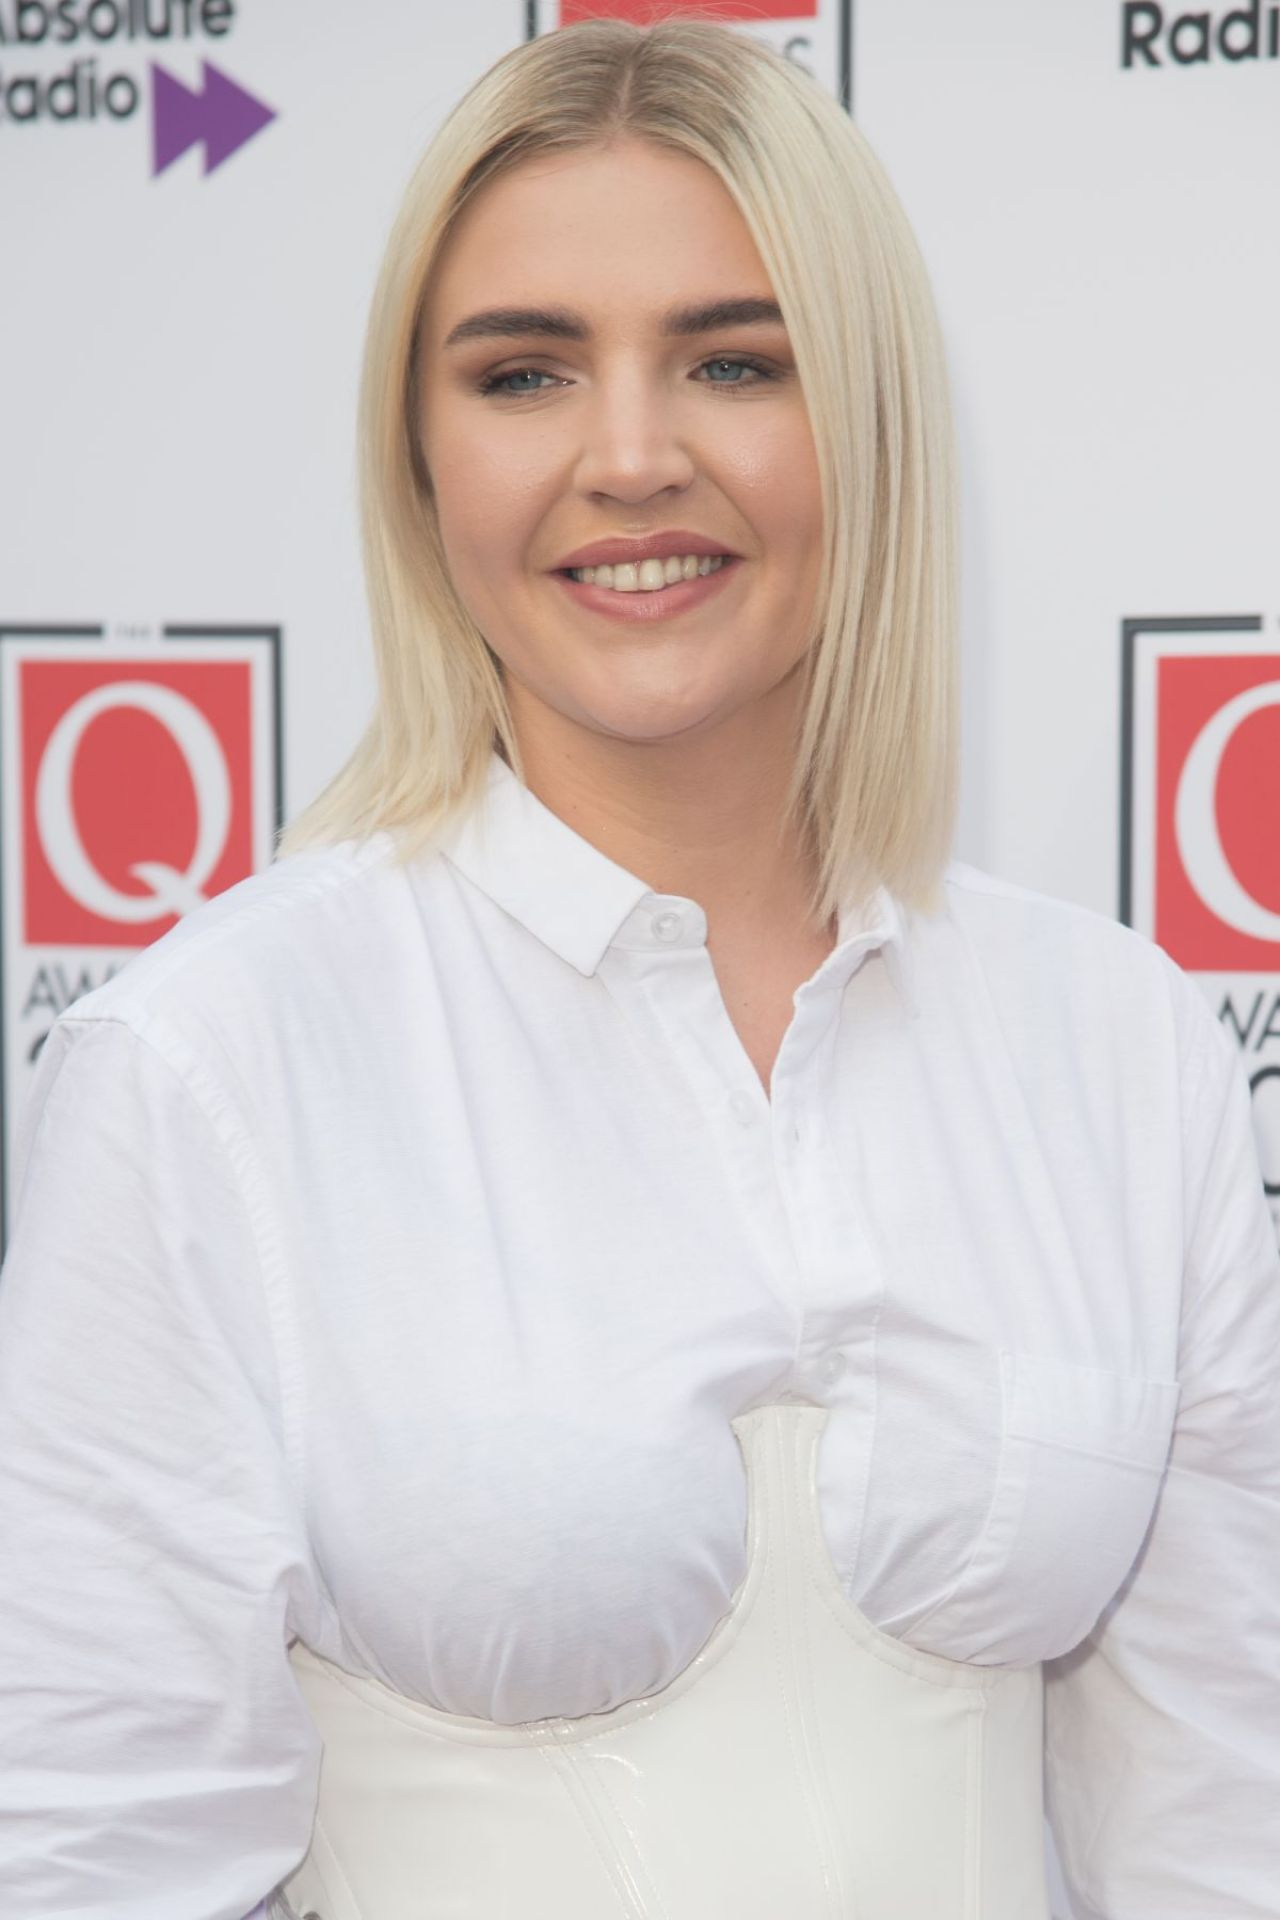 Rebecca Lucy Taylor Self Esteem Q Awards In London 10 16 2019 Celebmafia